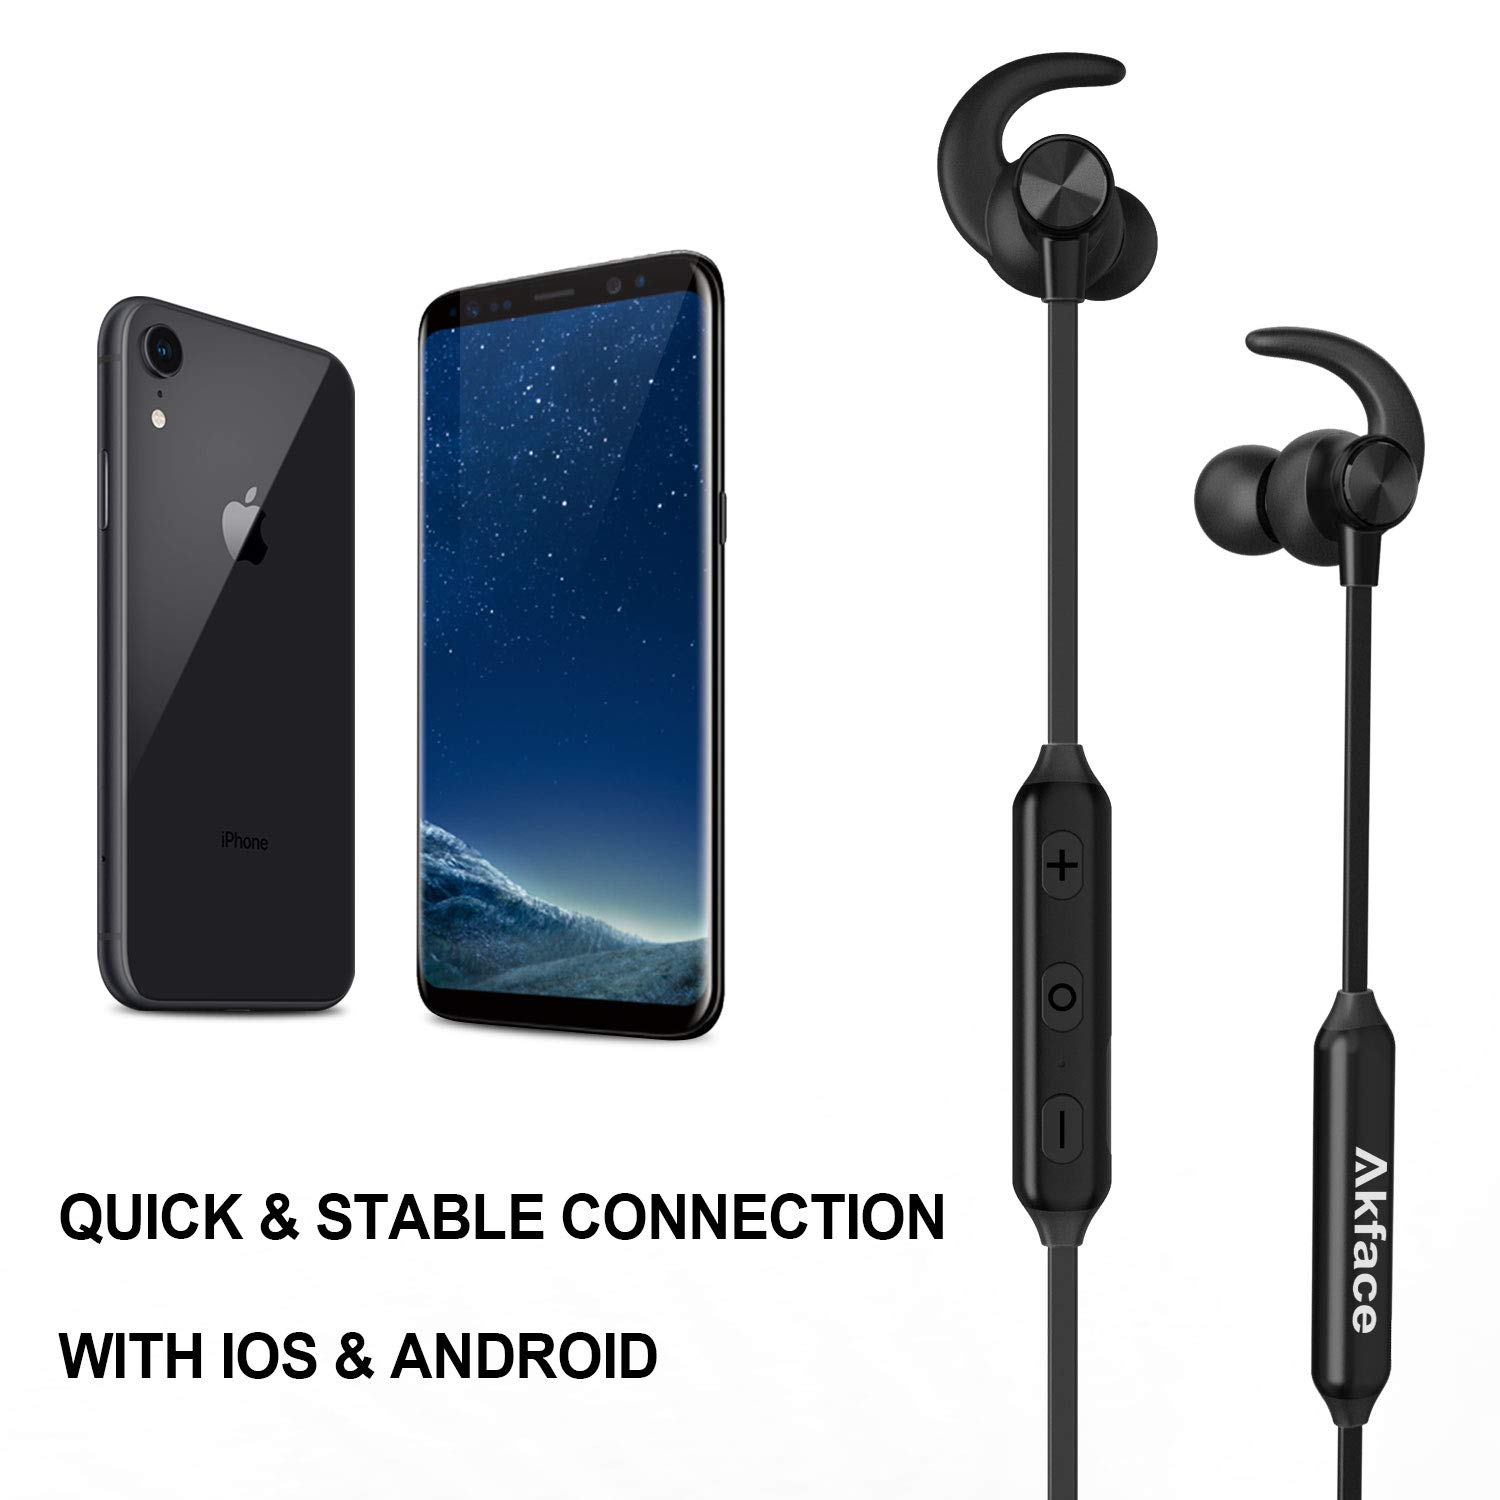 Bluetooth Headphones, Akface Wireless Earbuds Sweatproof Sport Earphones w/Mic Bluetooth 5.0 Fast Pairing HD Stereo Noise Canceling Magnetic in-Ear Headsets for Gym Running Workout Men Women Students by akface (Image #2)